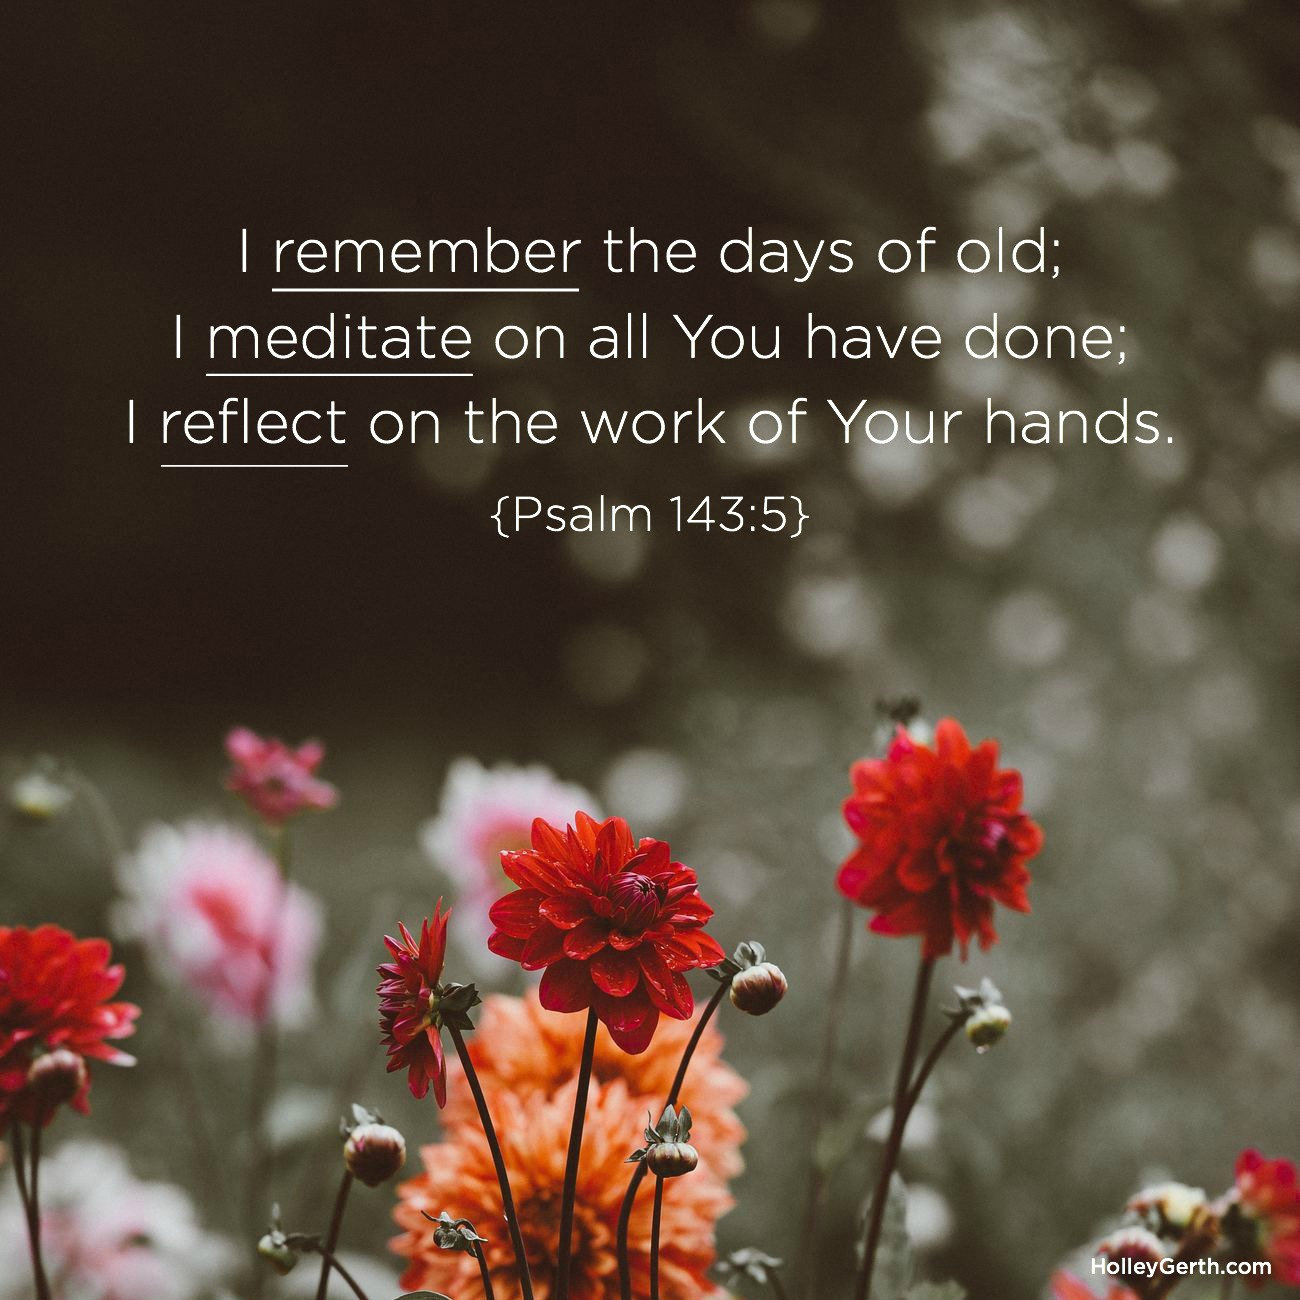 I remember the days of old; I meditate on all You have done; I reflect on the work of Your hands. {Psalm 143:5}